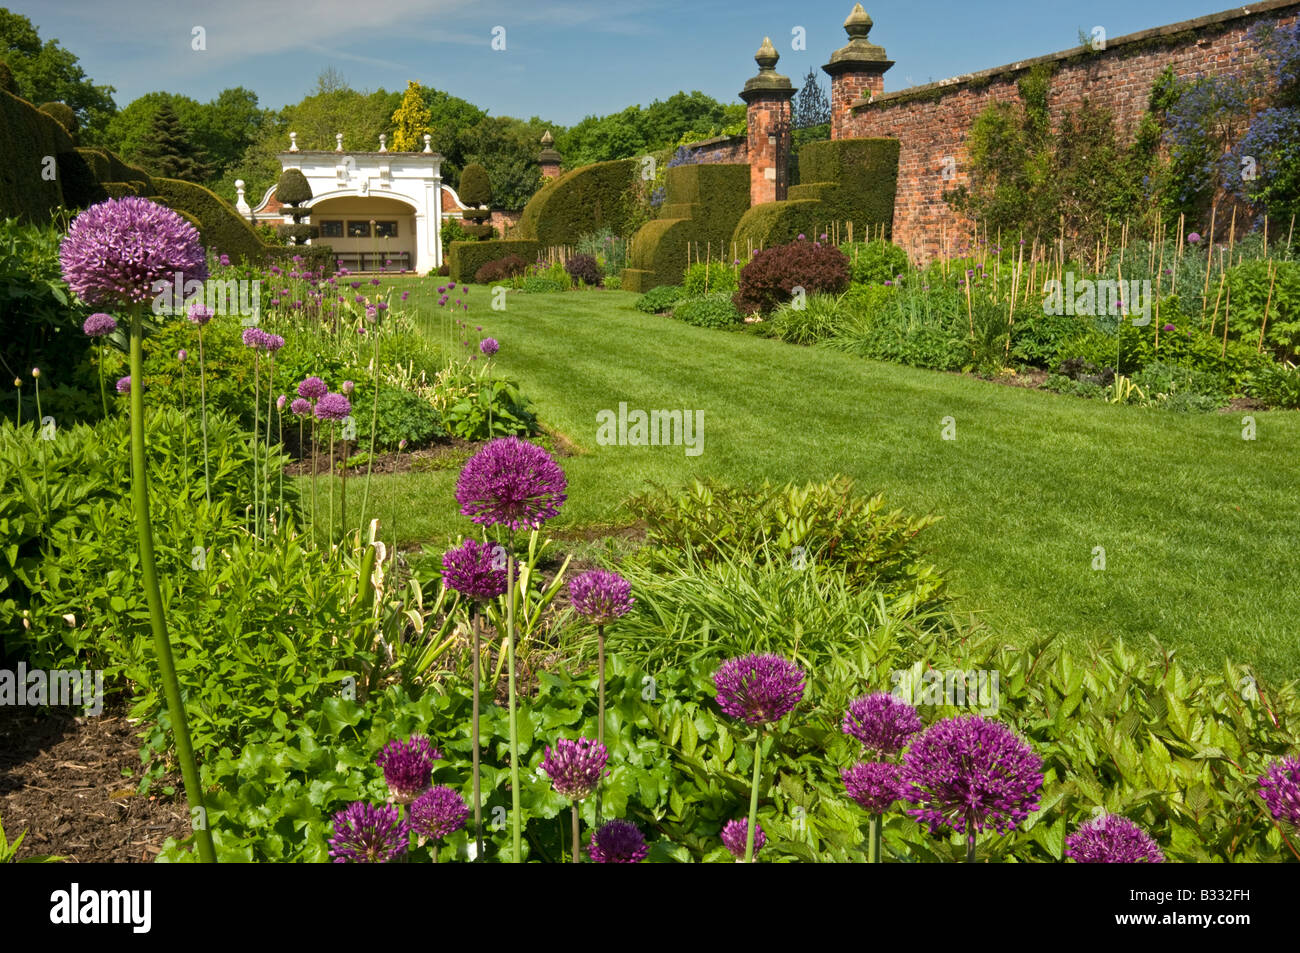 The Herbaceous Borders at Arley Hall and Gardens, Arley, Cheshire, England, UK - Stock Image